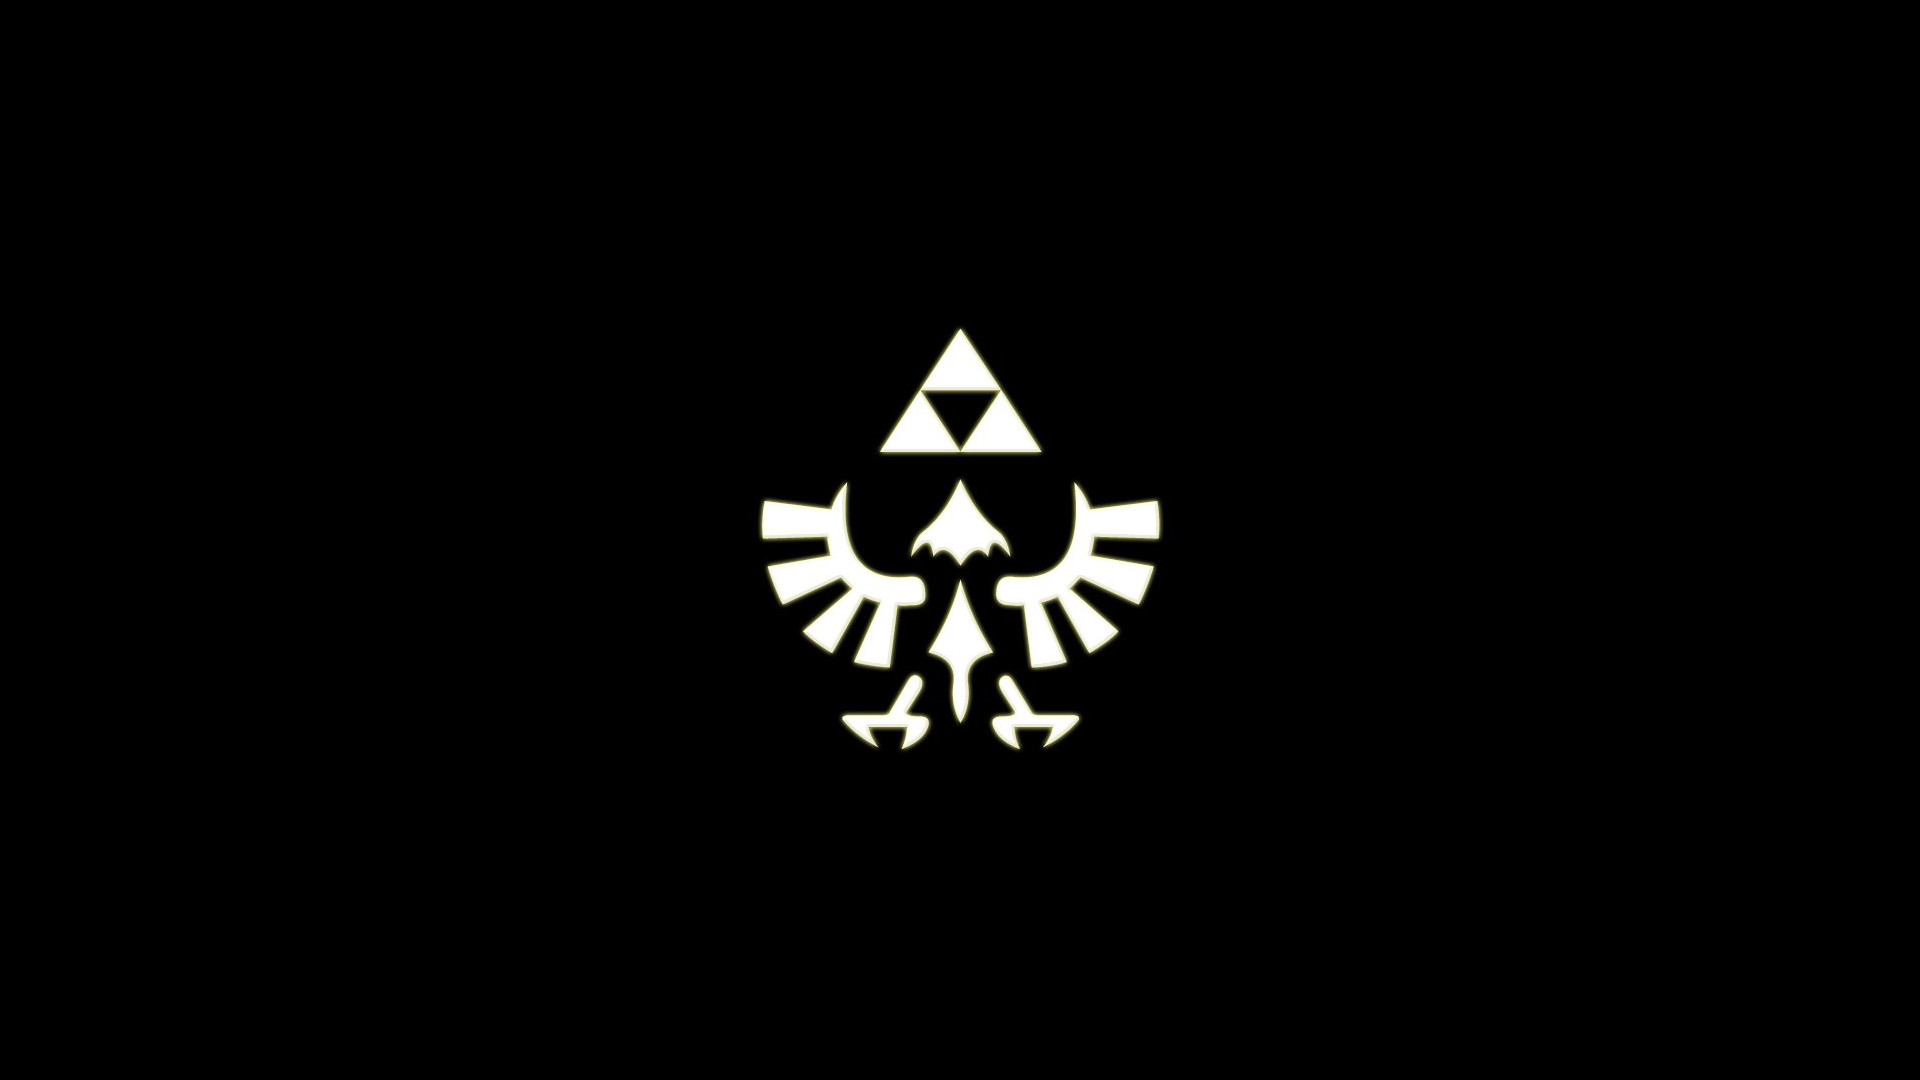 1920x1080 Triforce The Wallpaper  Triforce, The, Legend, Of, Zelda